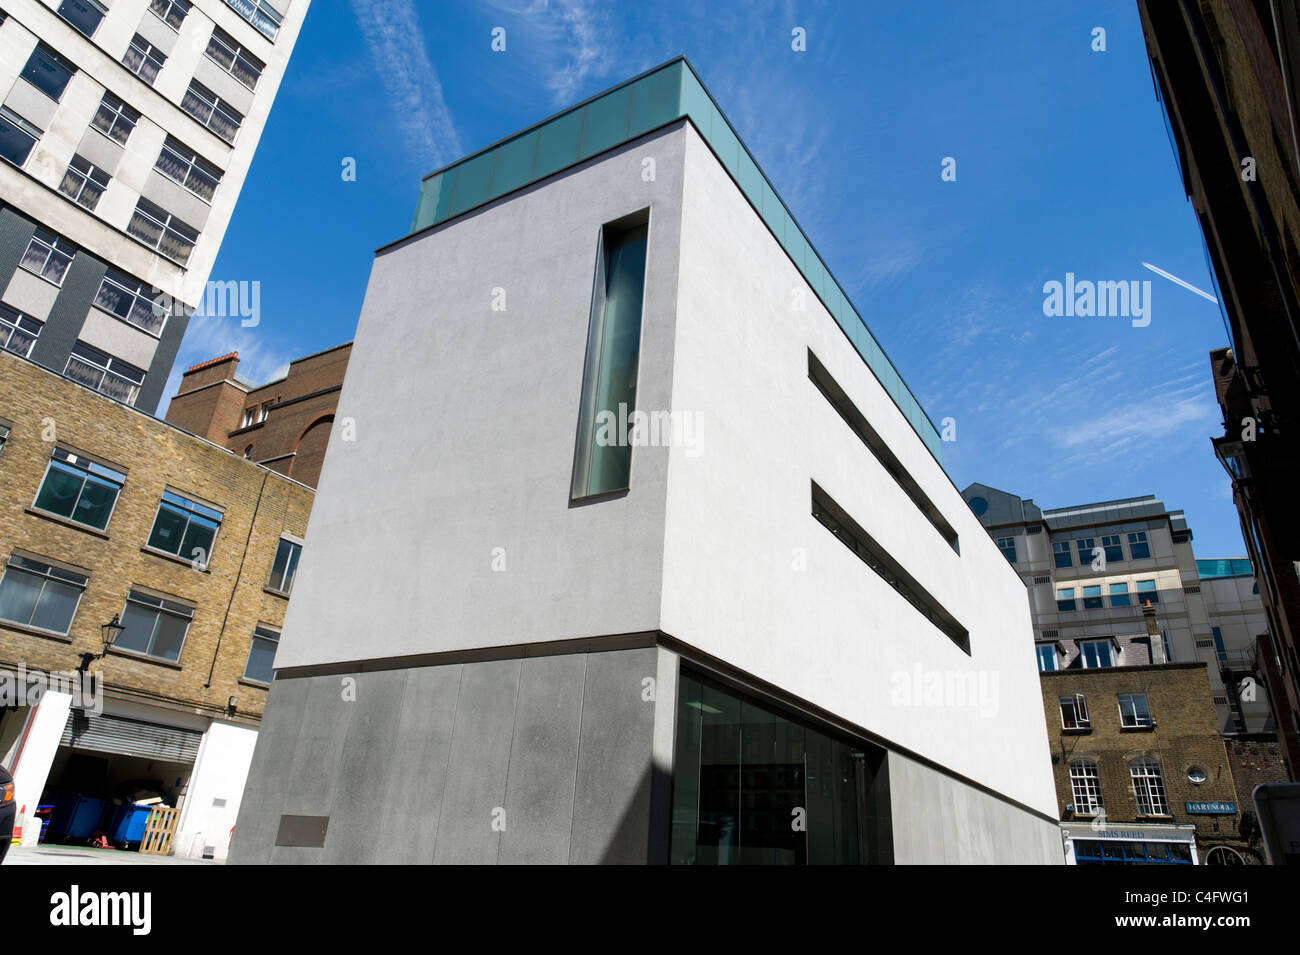 The White Cube Gallery in Mason's Yard, off Duke Street, St. James's, London, UK - Stock Image